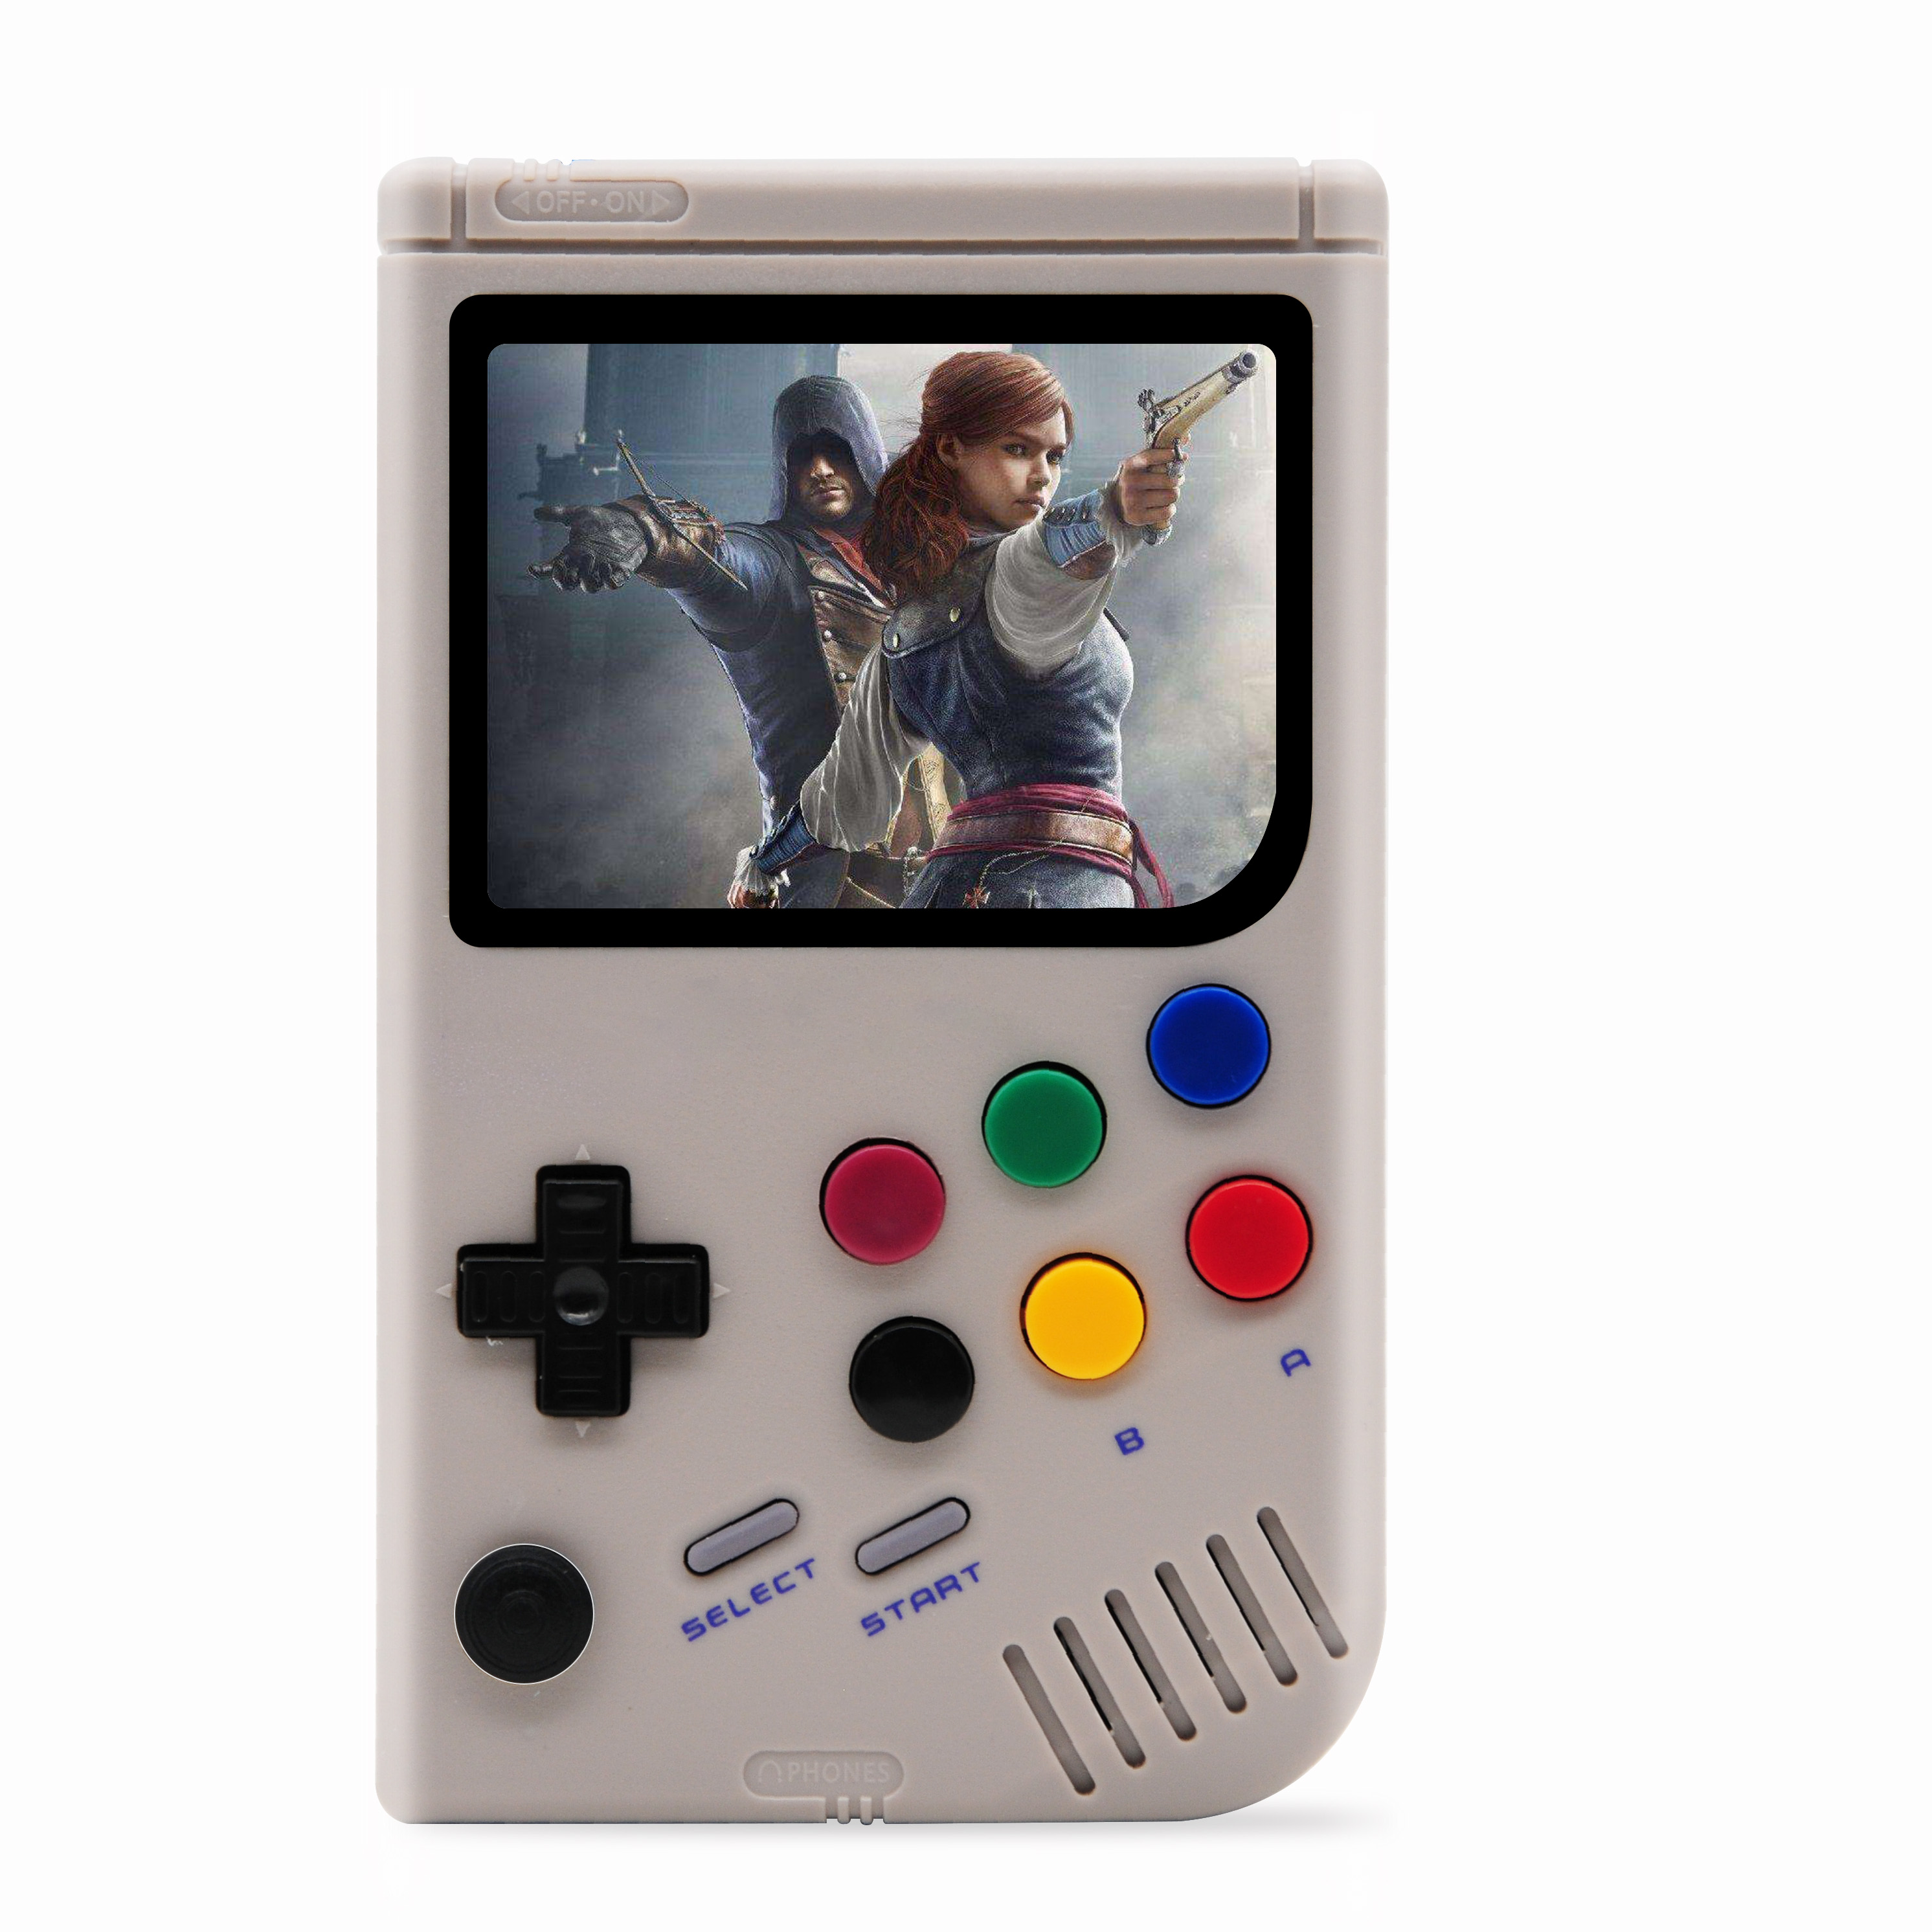 Dikdoc LCL Pi Retro Video Game Console Player Raspberry Pi 3B Handheld Game with 3.5 Inch IPS Screen Built in 10000 Games-in Handheld Game Players from Consumer Electronics    2